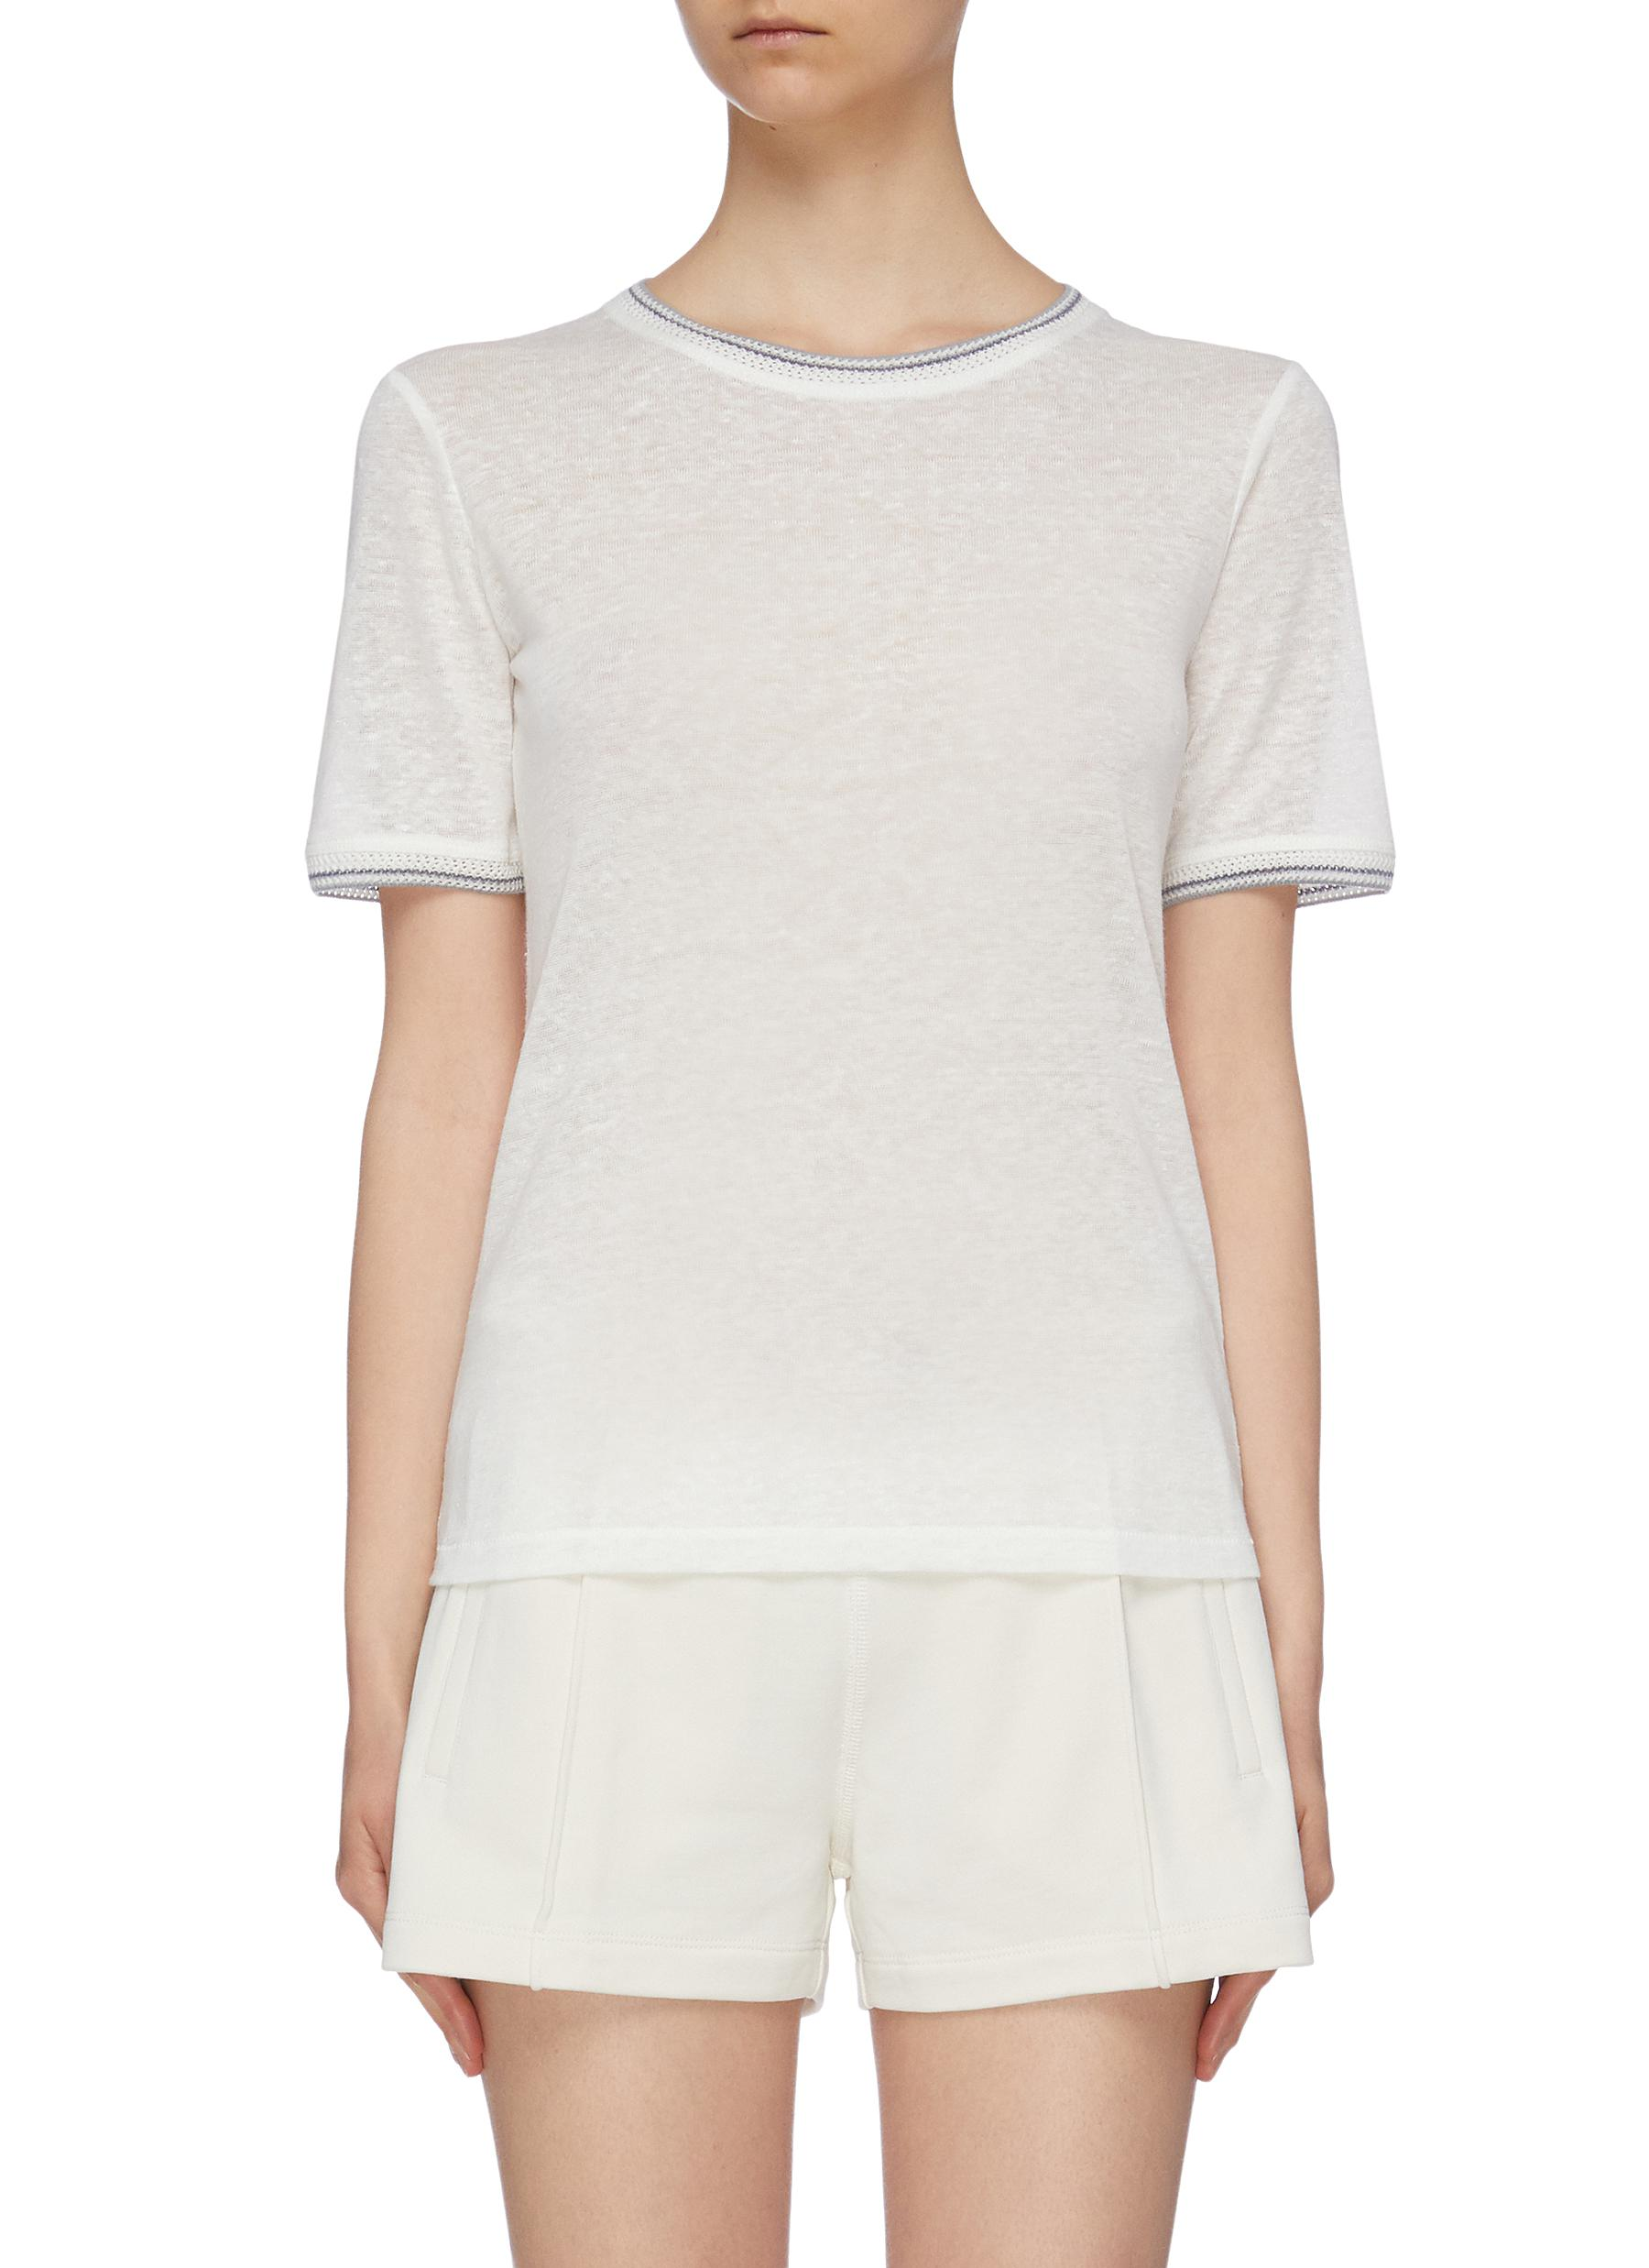 Molly crochet stripe border linen T-shirt by Rag & Bone/Jean